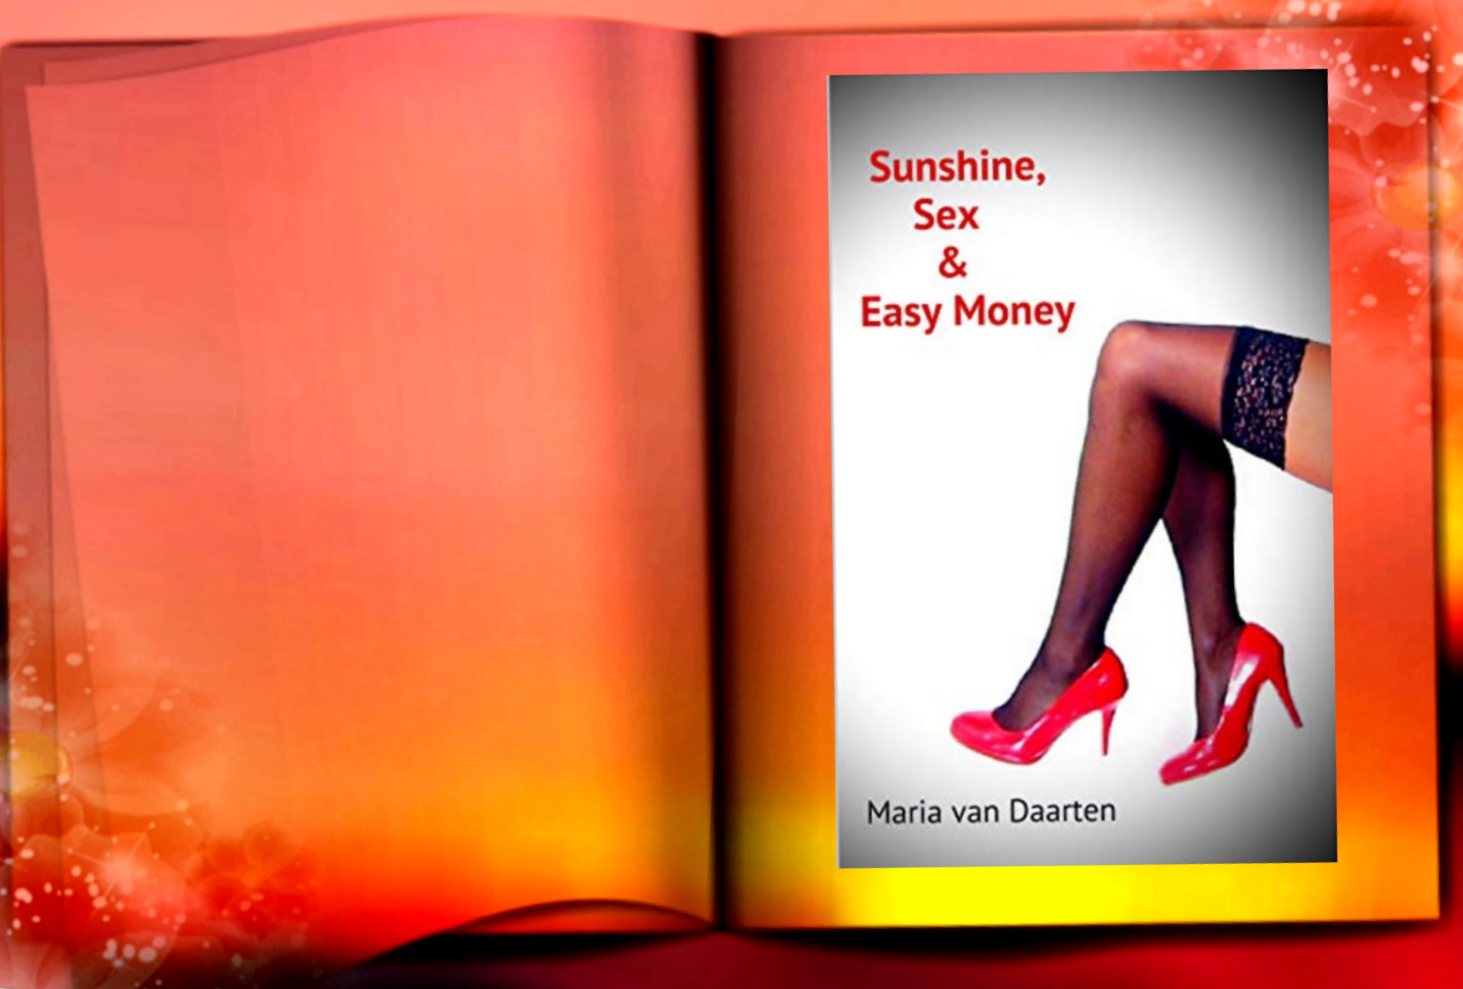 Chapter 10: Sunshine, Sex & Easy Money - Diary of a Call Girl